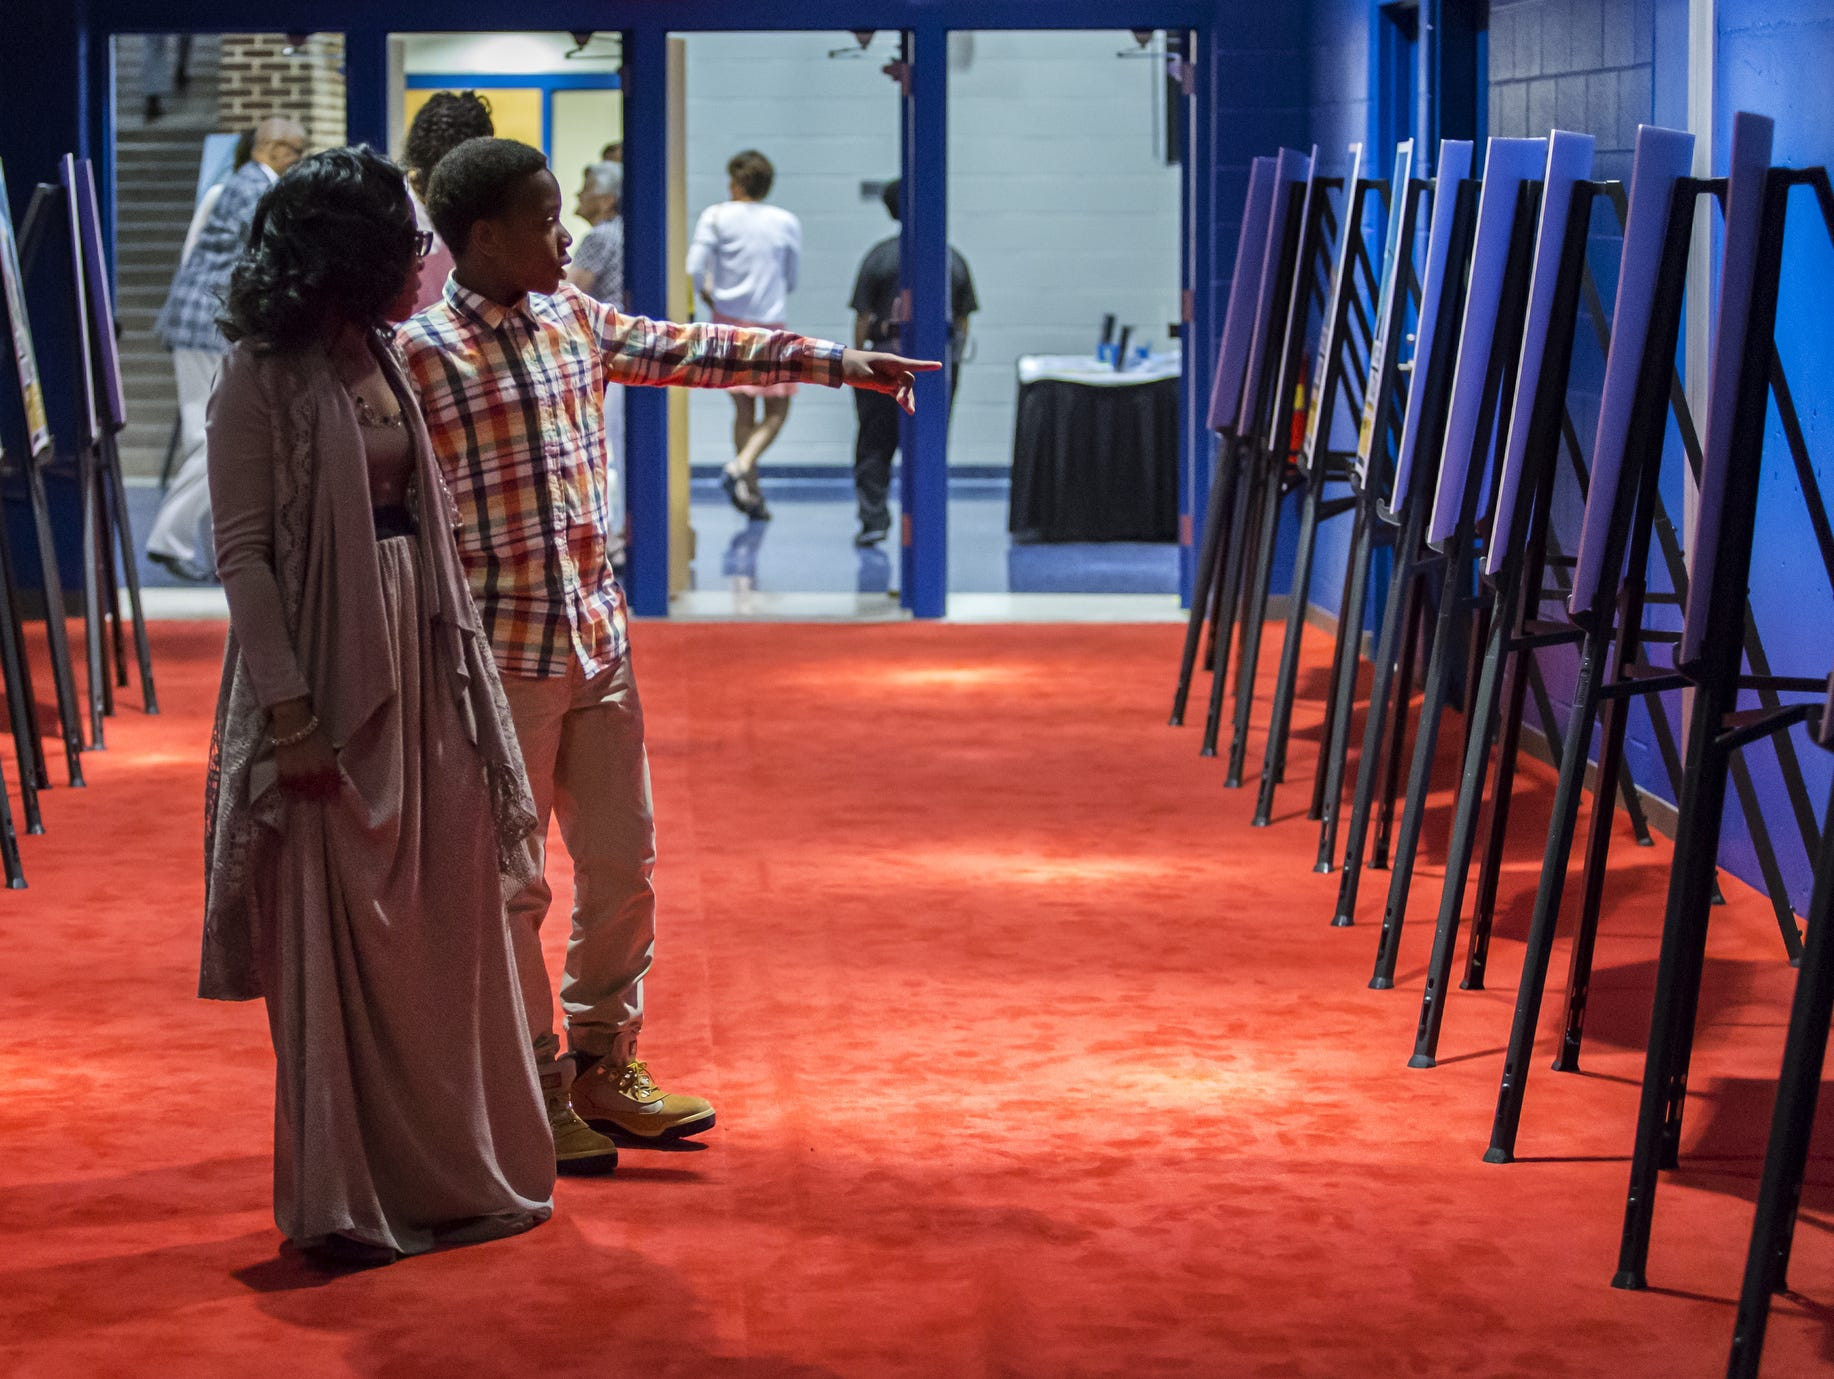 Keysha and Dariyon Williams, 8, check out posters of The News Journal's Athletes of the Week as they make their way down the red carpet for the Delaware Sports Awards banquet at the Bob Carpenter Center at the University of Delaware in Newark on Wednesday evening.